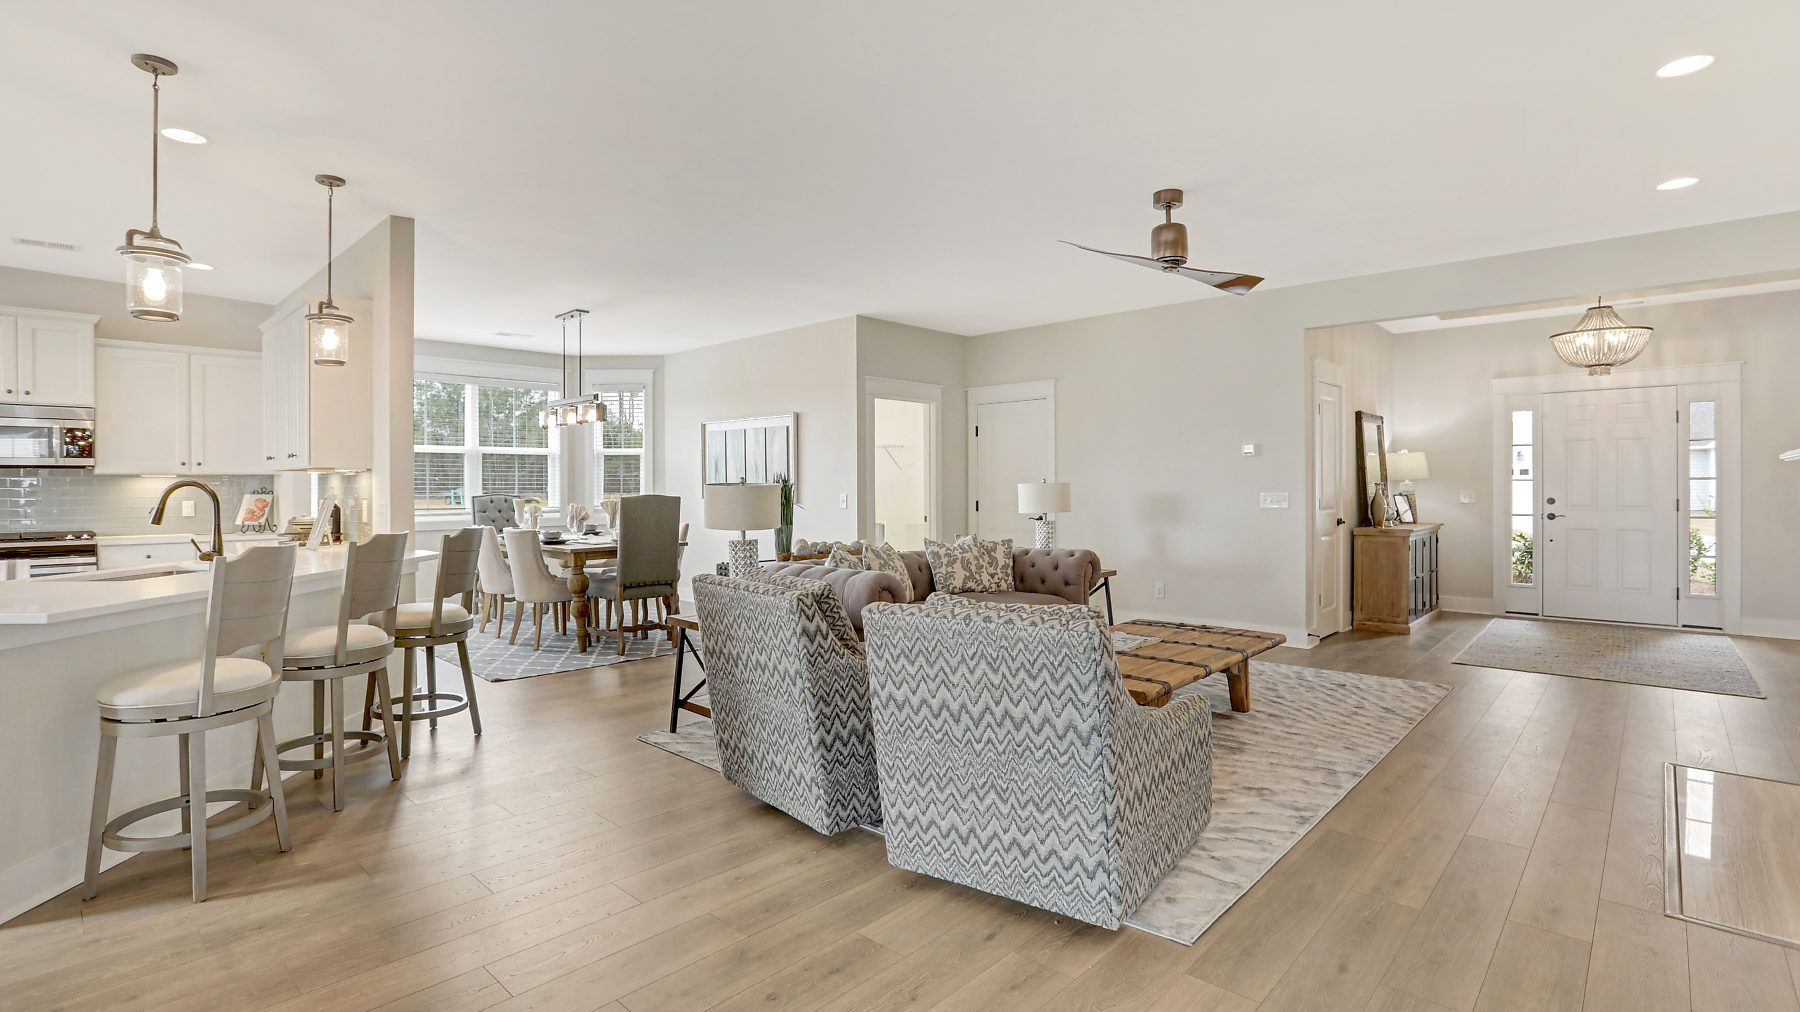 Living Area featured in The Tillery By Village Park Homes in Savannah, GA